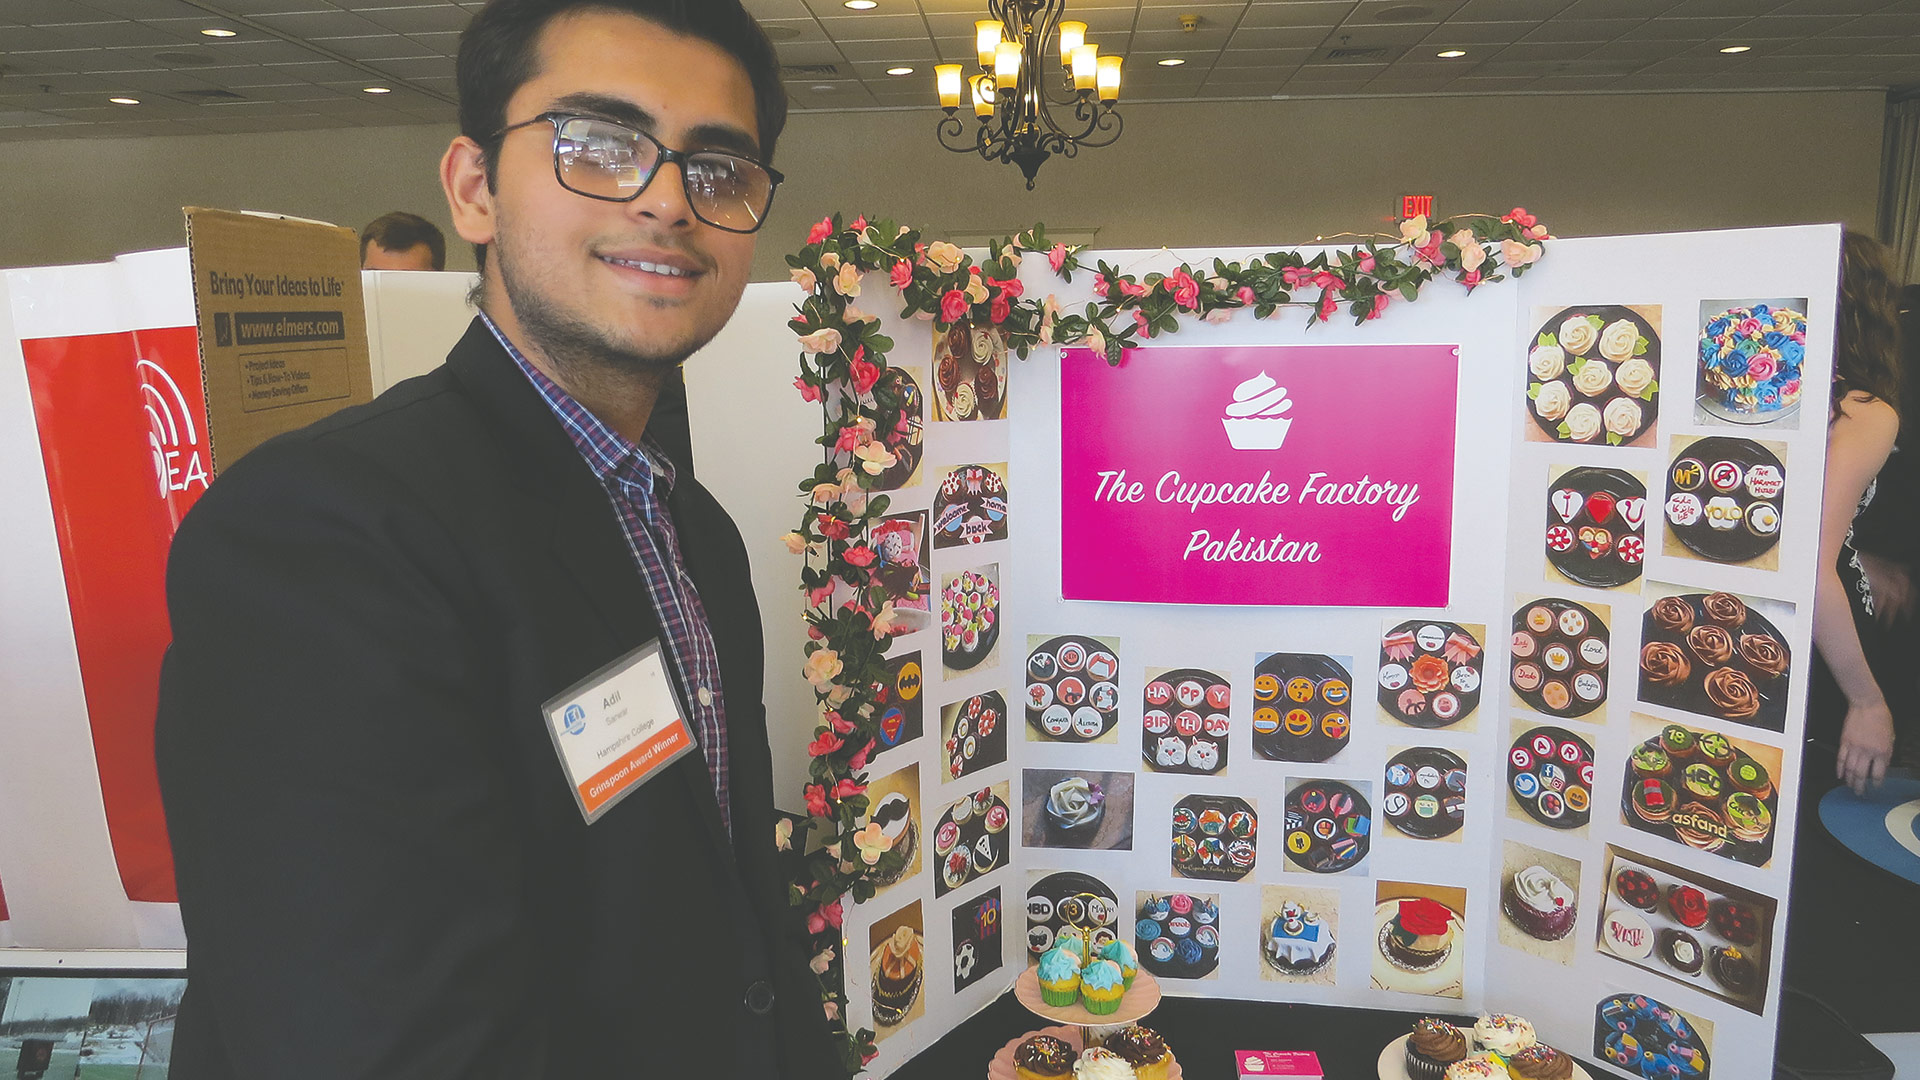 Hampshire College student Adil Sarwar shows off his venture, the Cupcake Factory